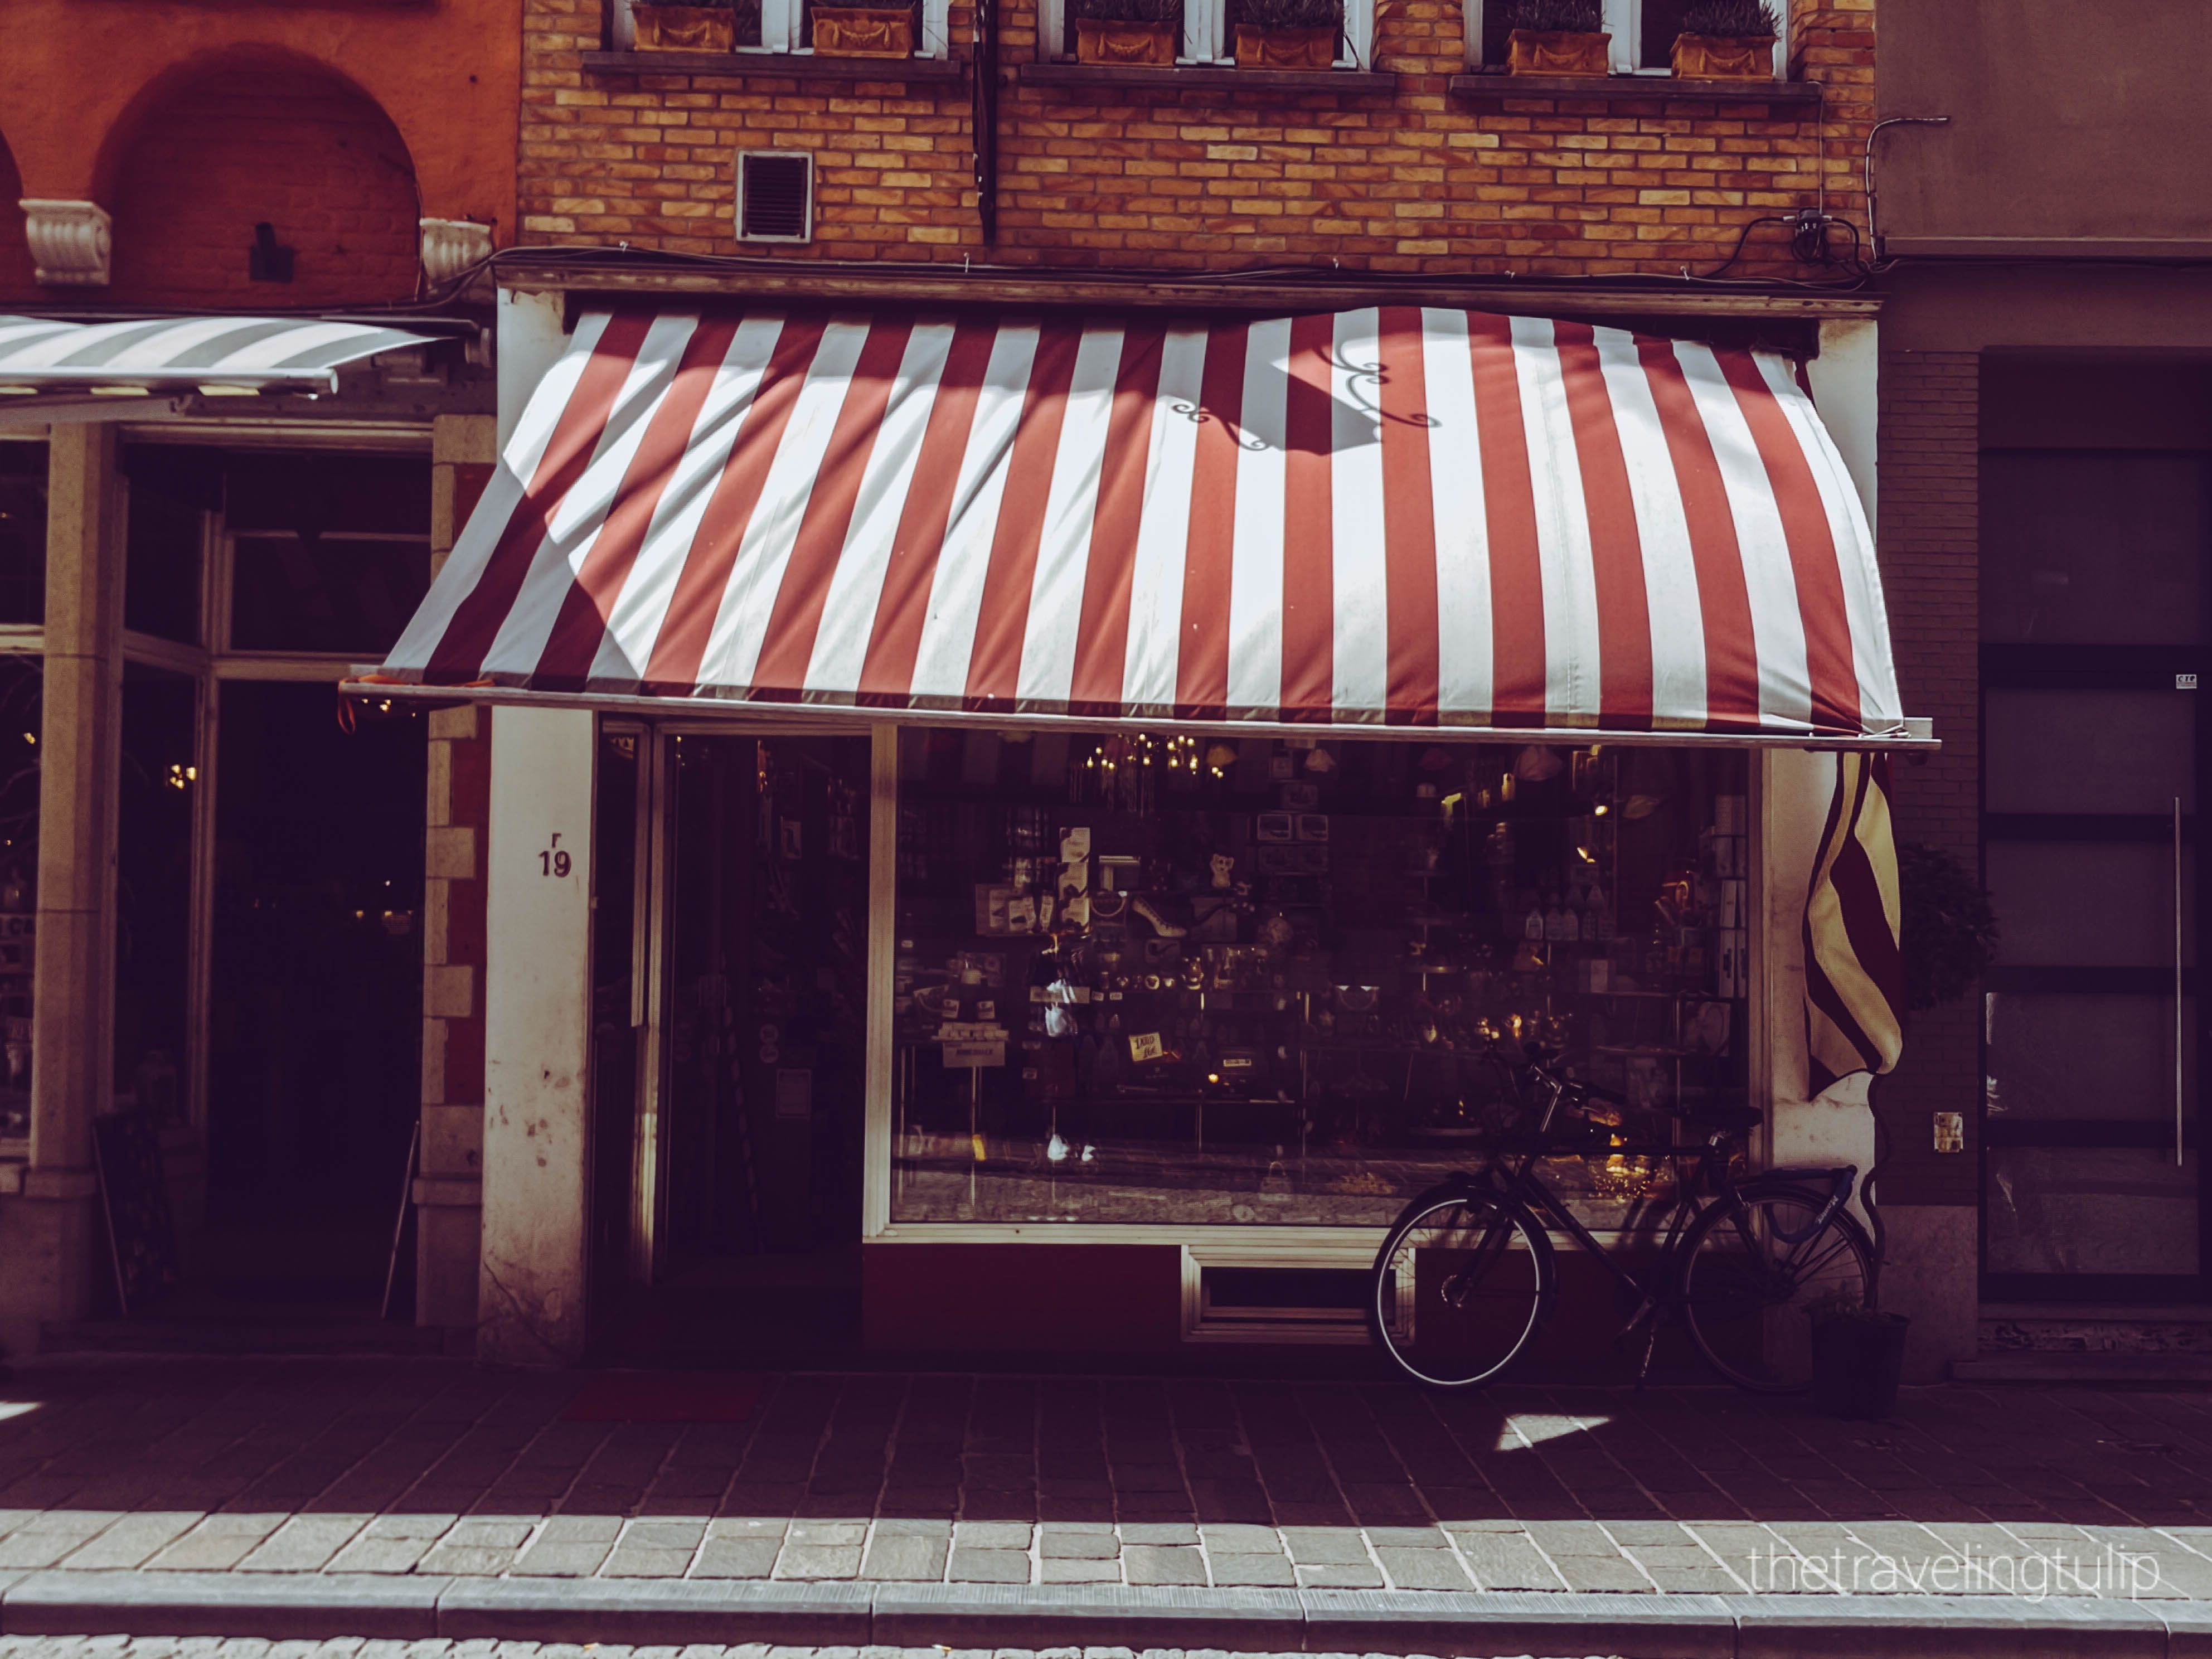 3 chocolate shops to try out in Bruges